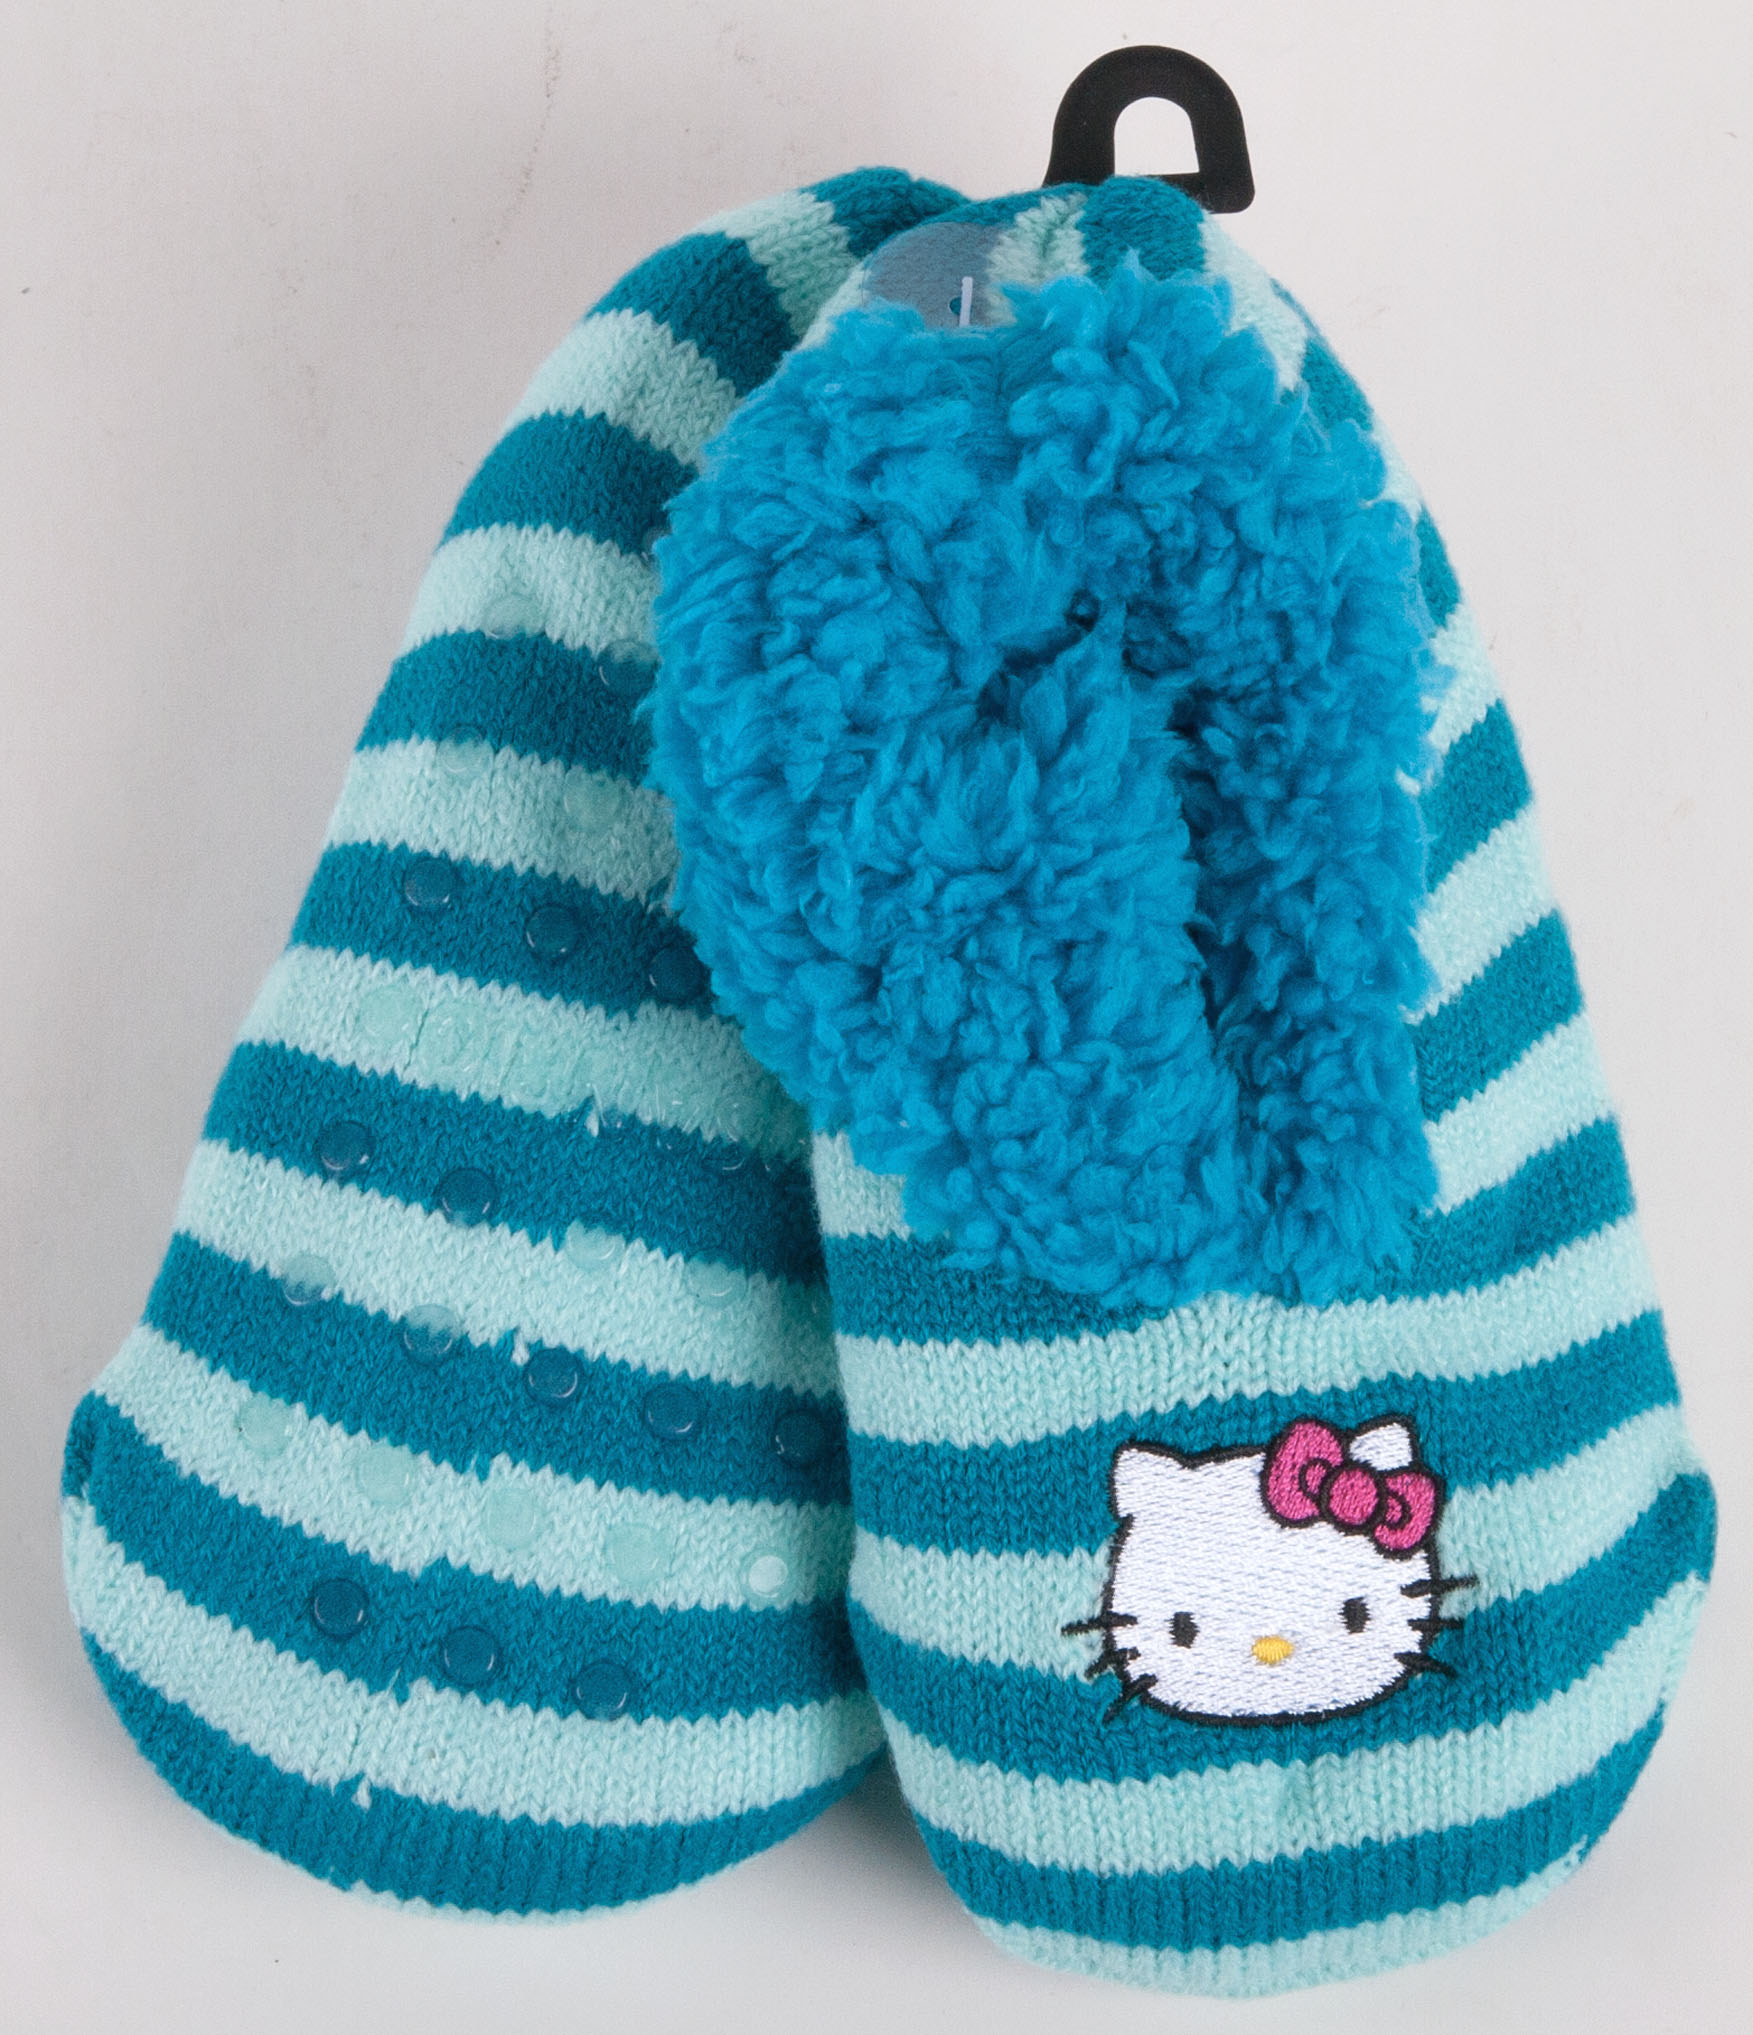 Sanrio Hello Kitty Blue Knit Striped Sock Slippers Girls-4870 eBay